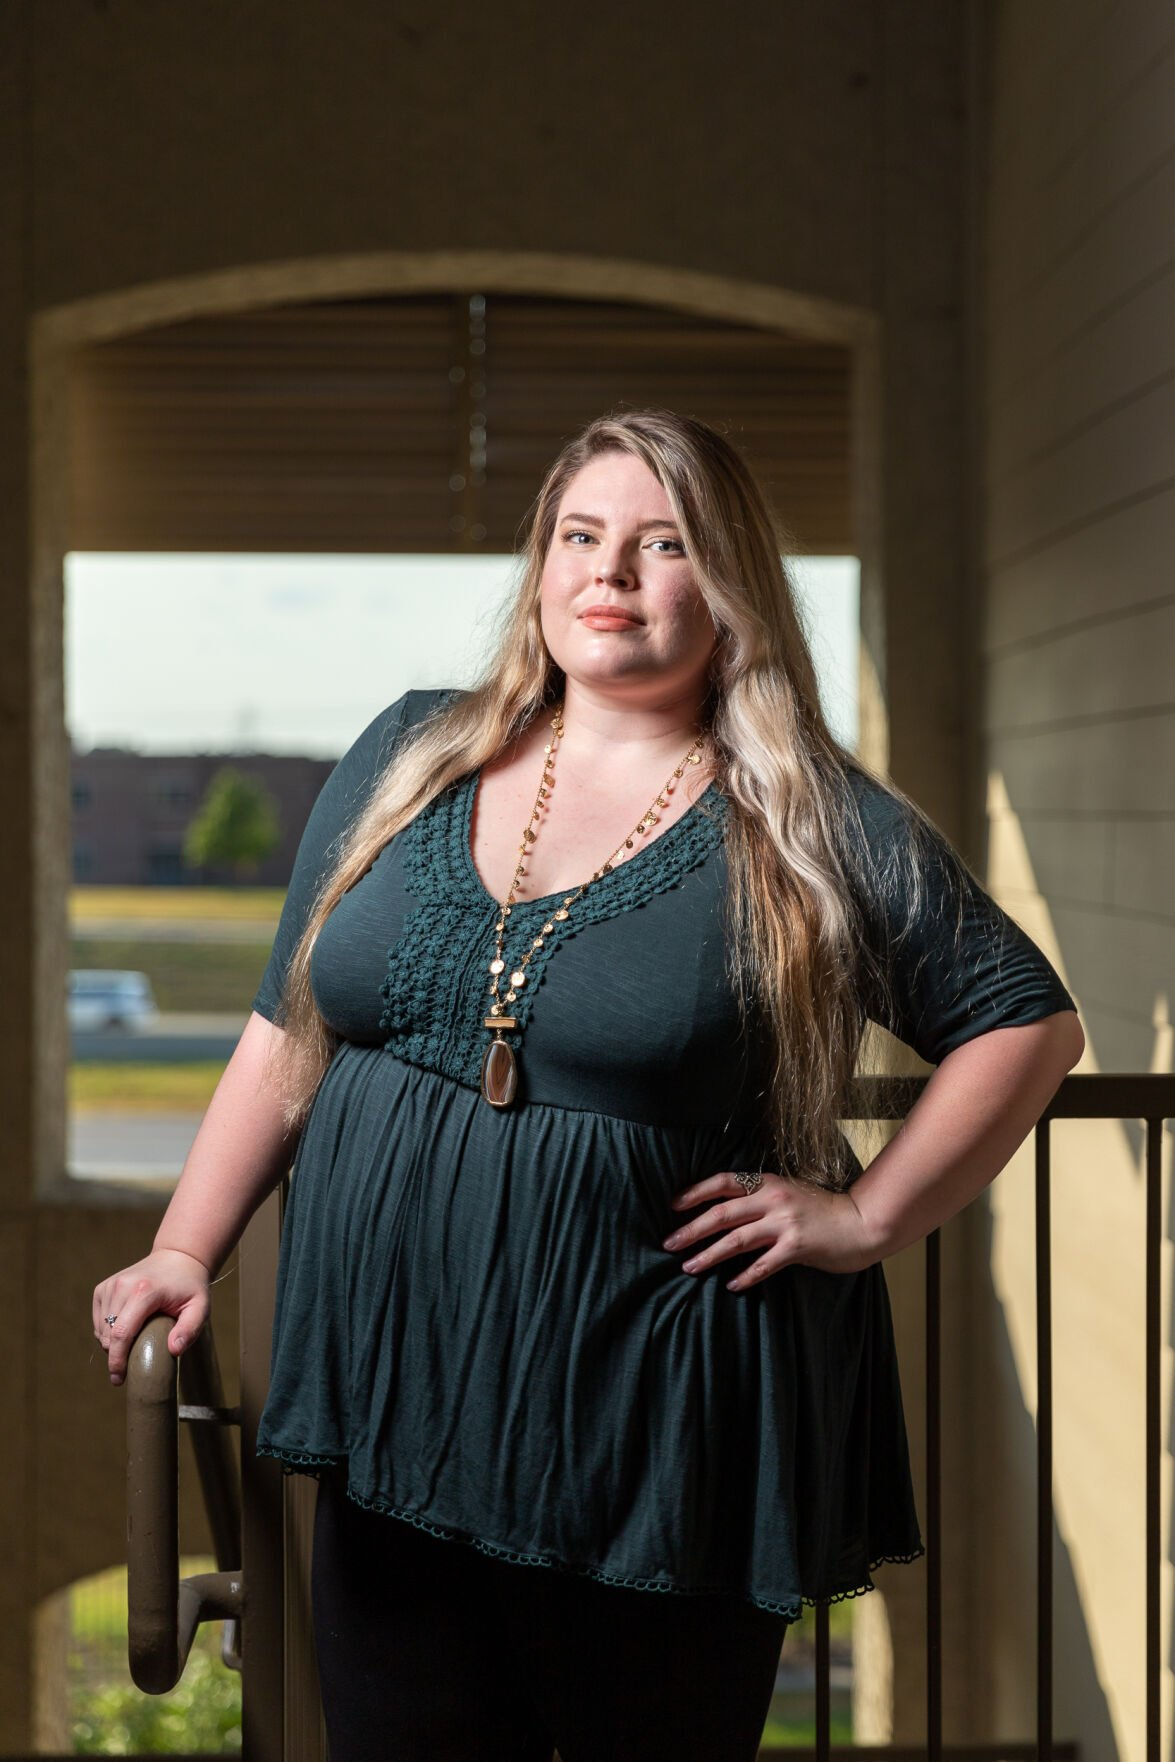 'He said he could see the COVID in my lungs': student describes symptoms, life with COVID-19